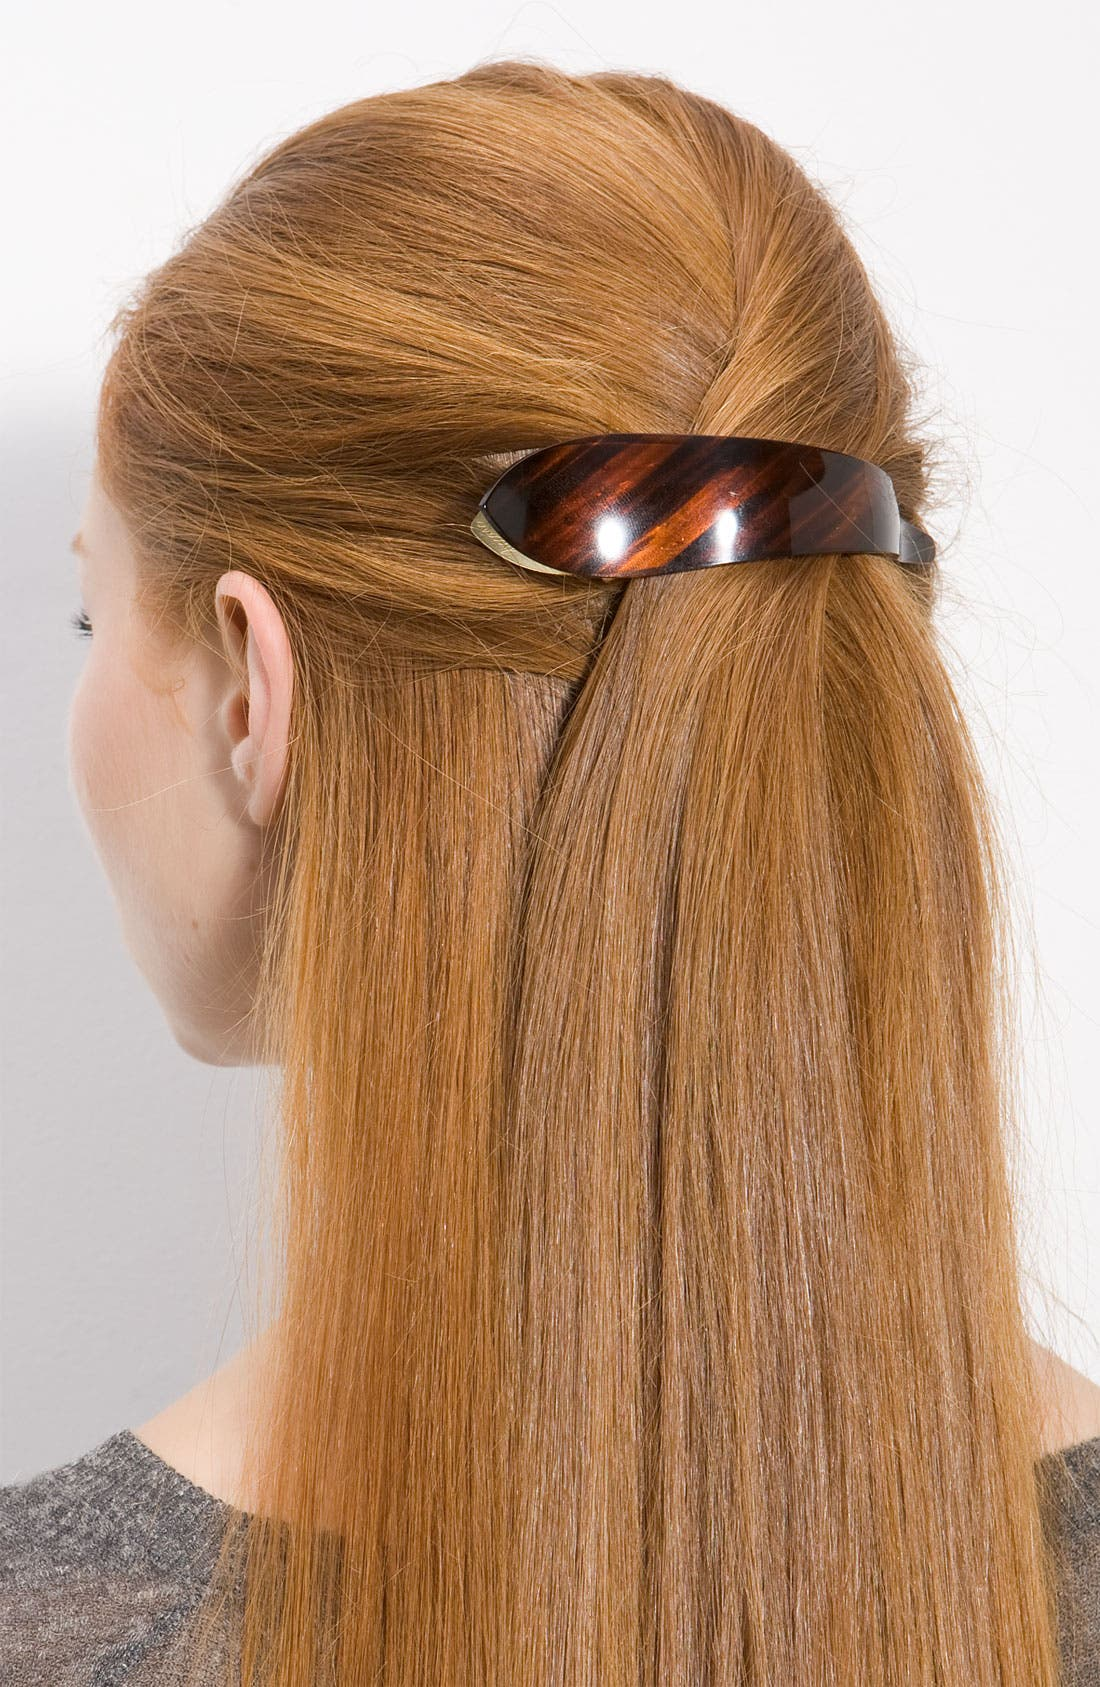 Alternate Image 1 Selected - Ficcare 'Maximas' Hair Clip